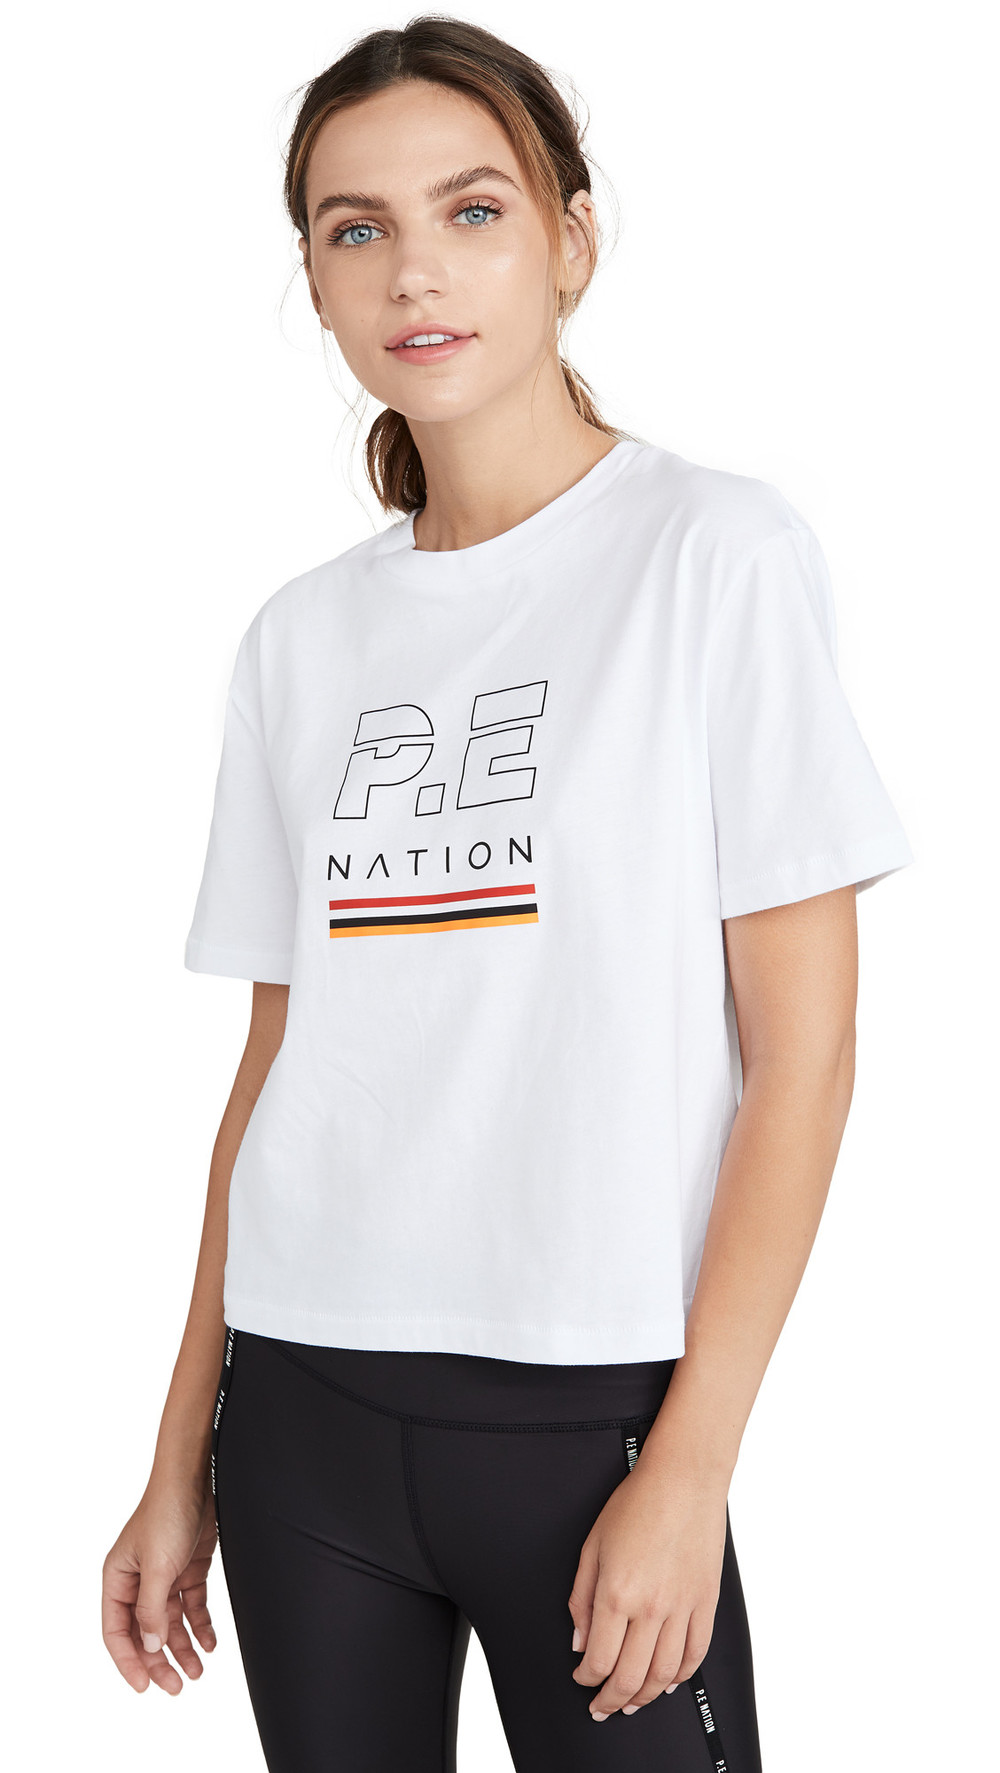 P.E NATION Ignition Cropped Tee in white